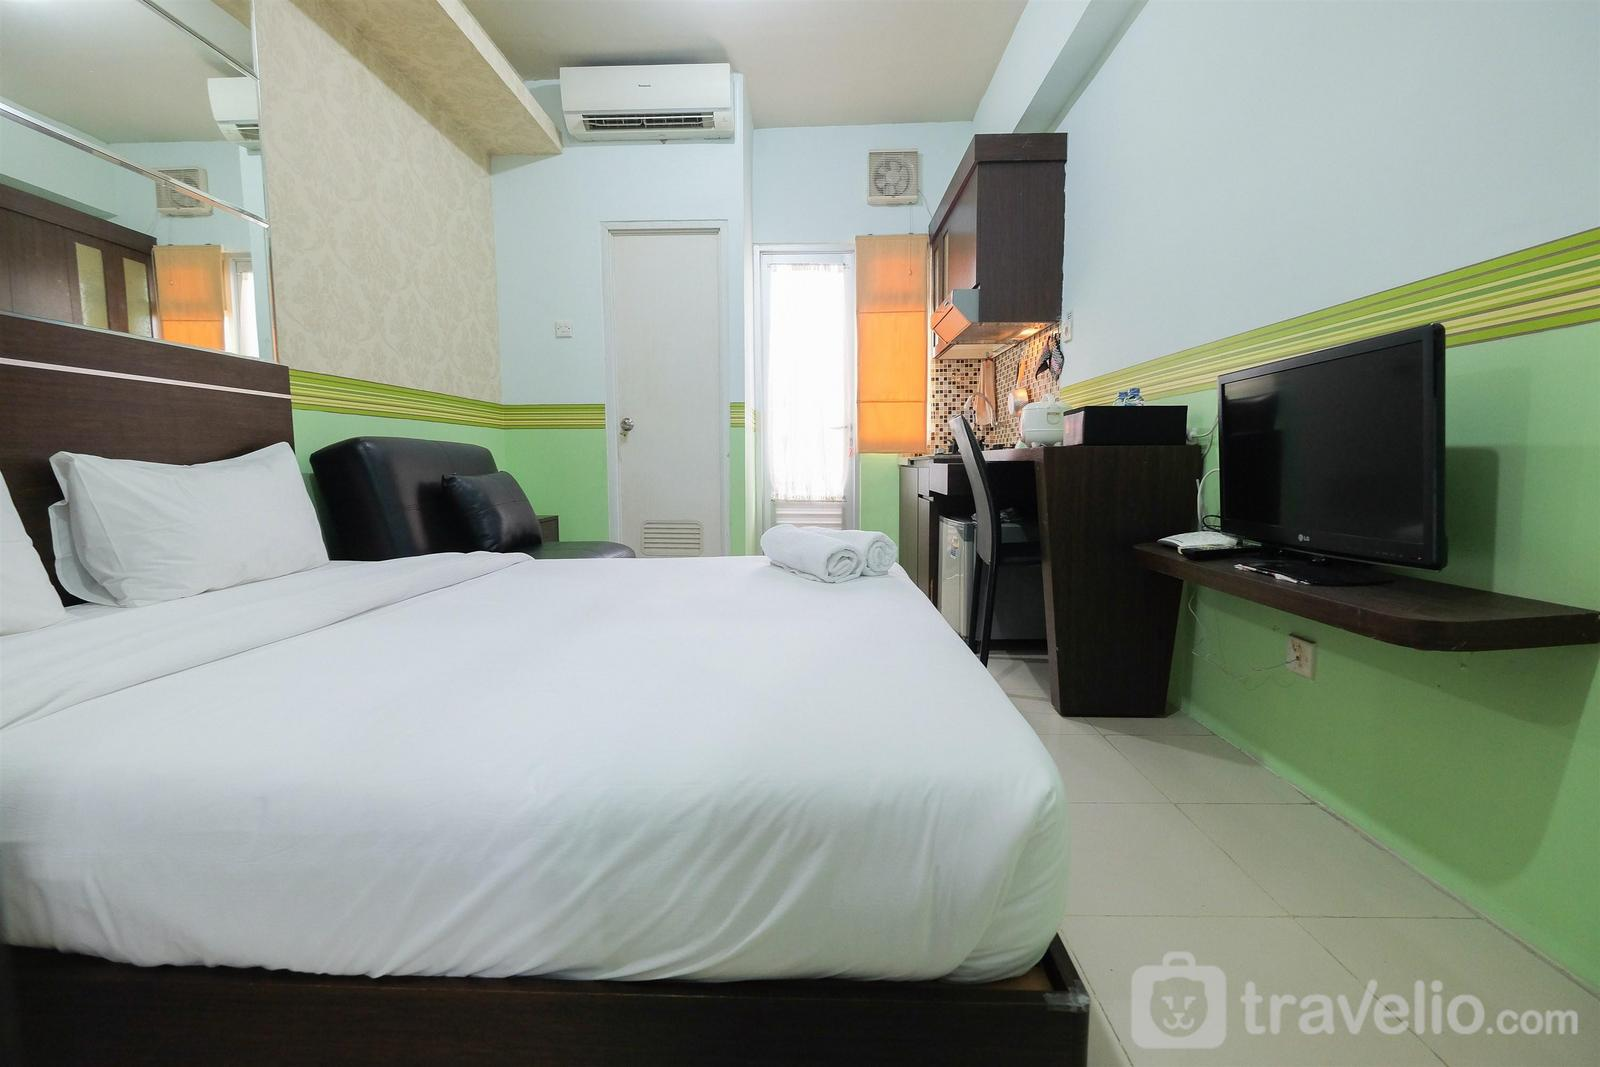 Grand Emerald Apartment - Best Deal Studio Room Grand Emerald Apartment By Travelio